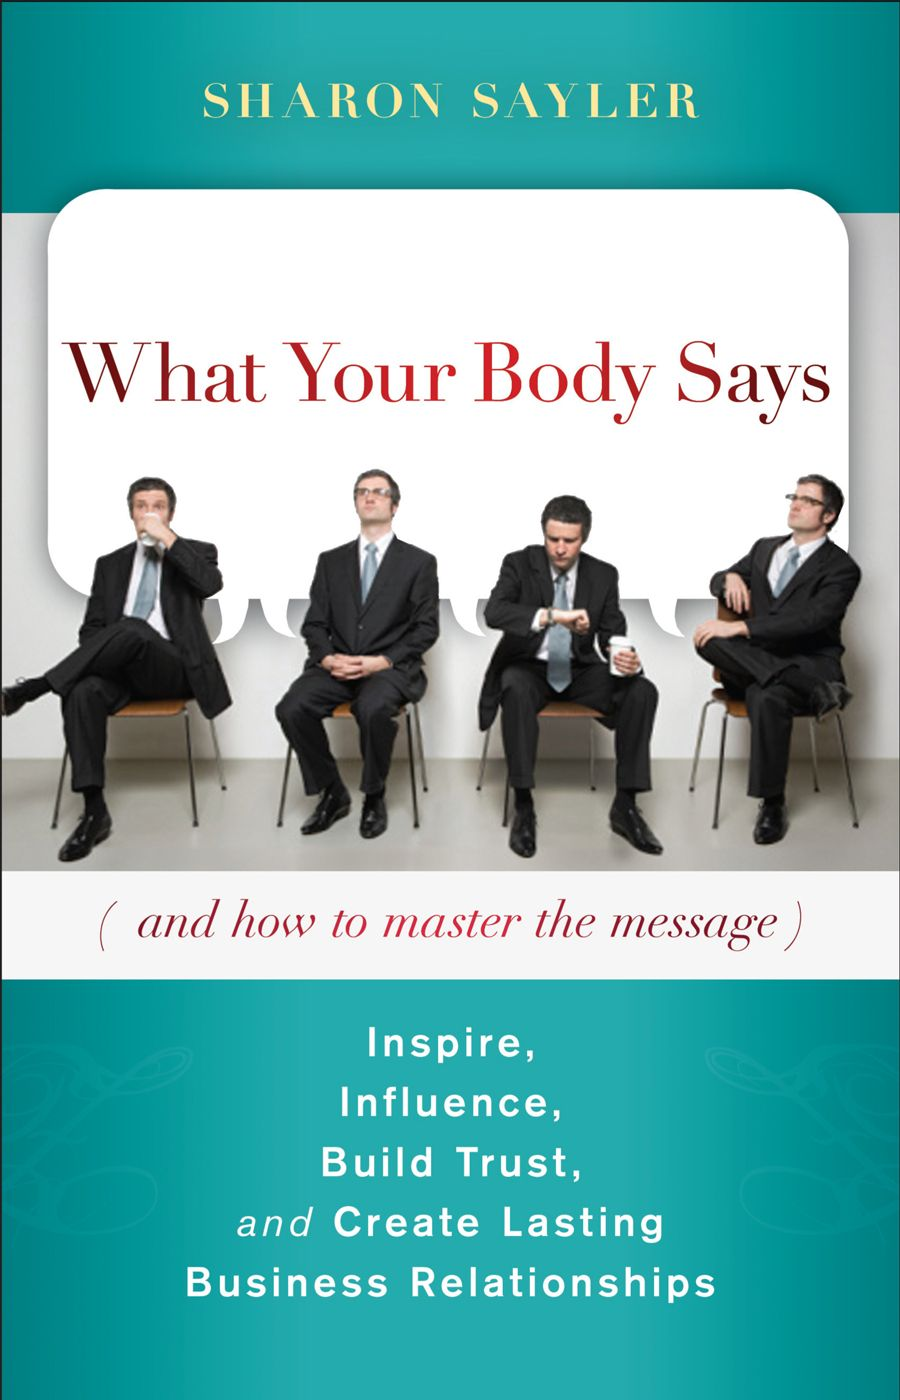 What our body says is the message table 9